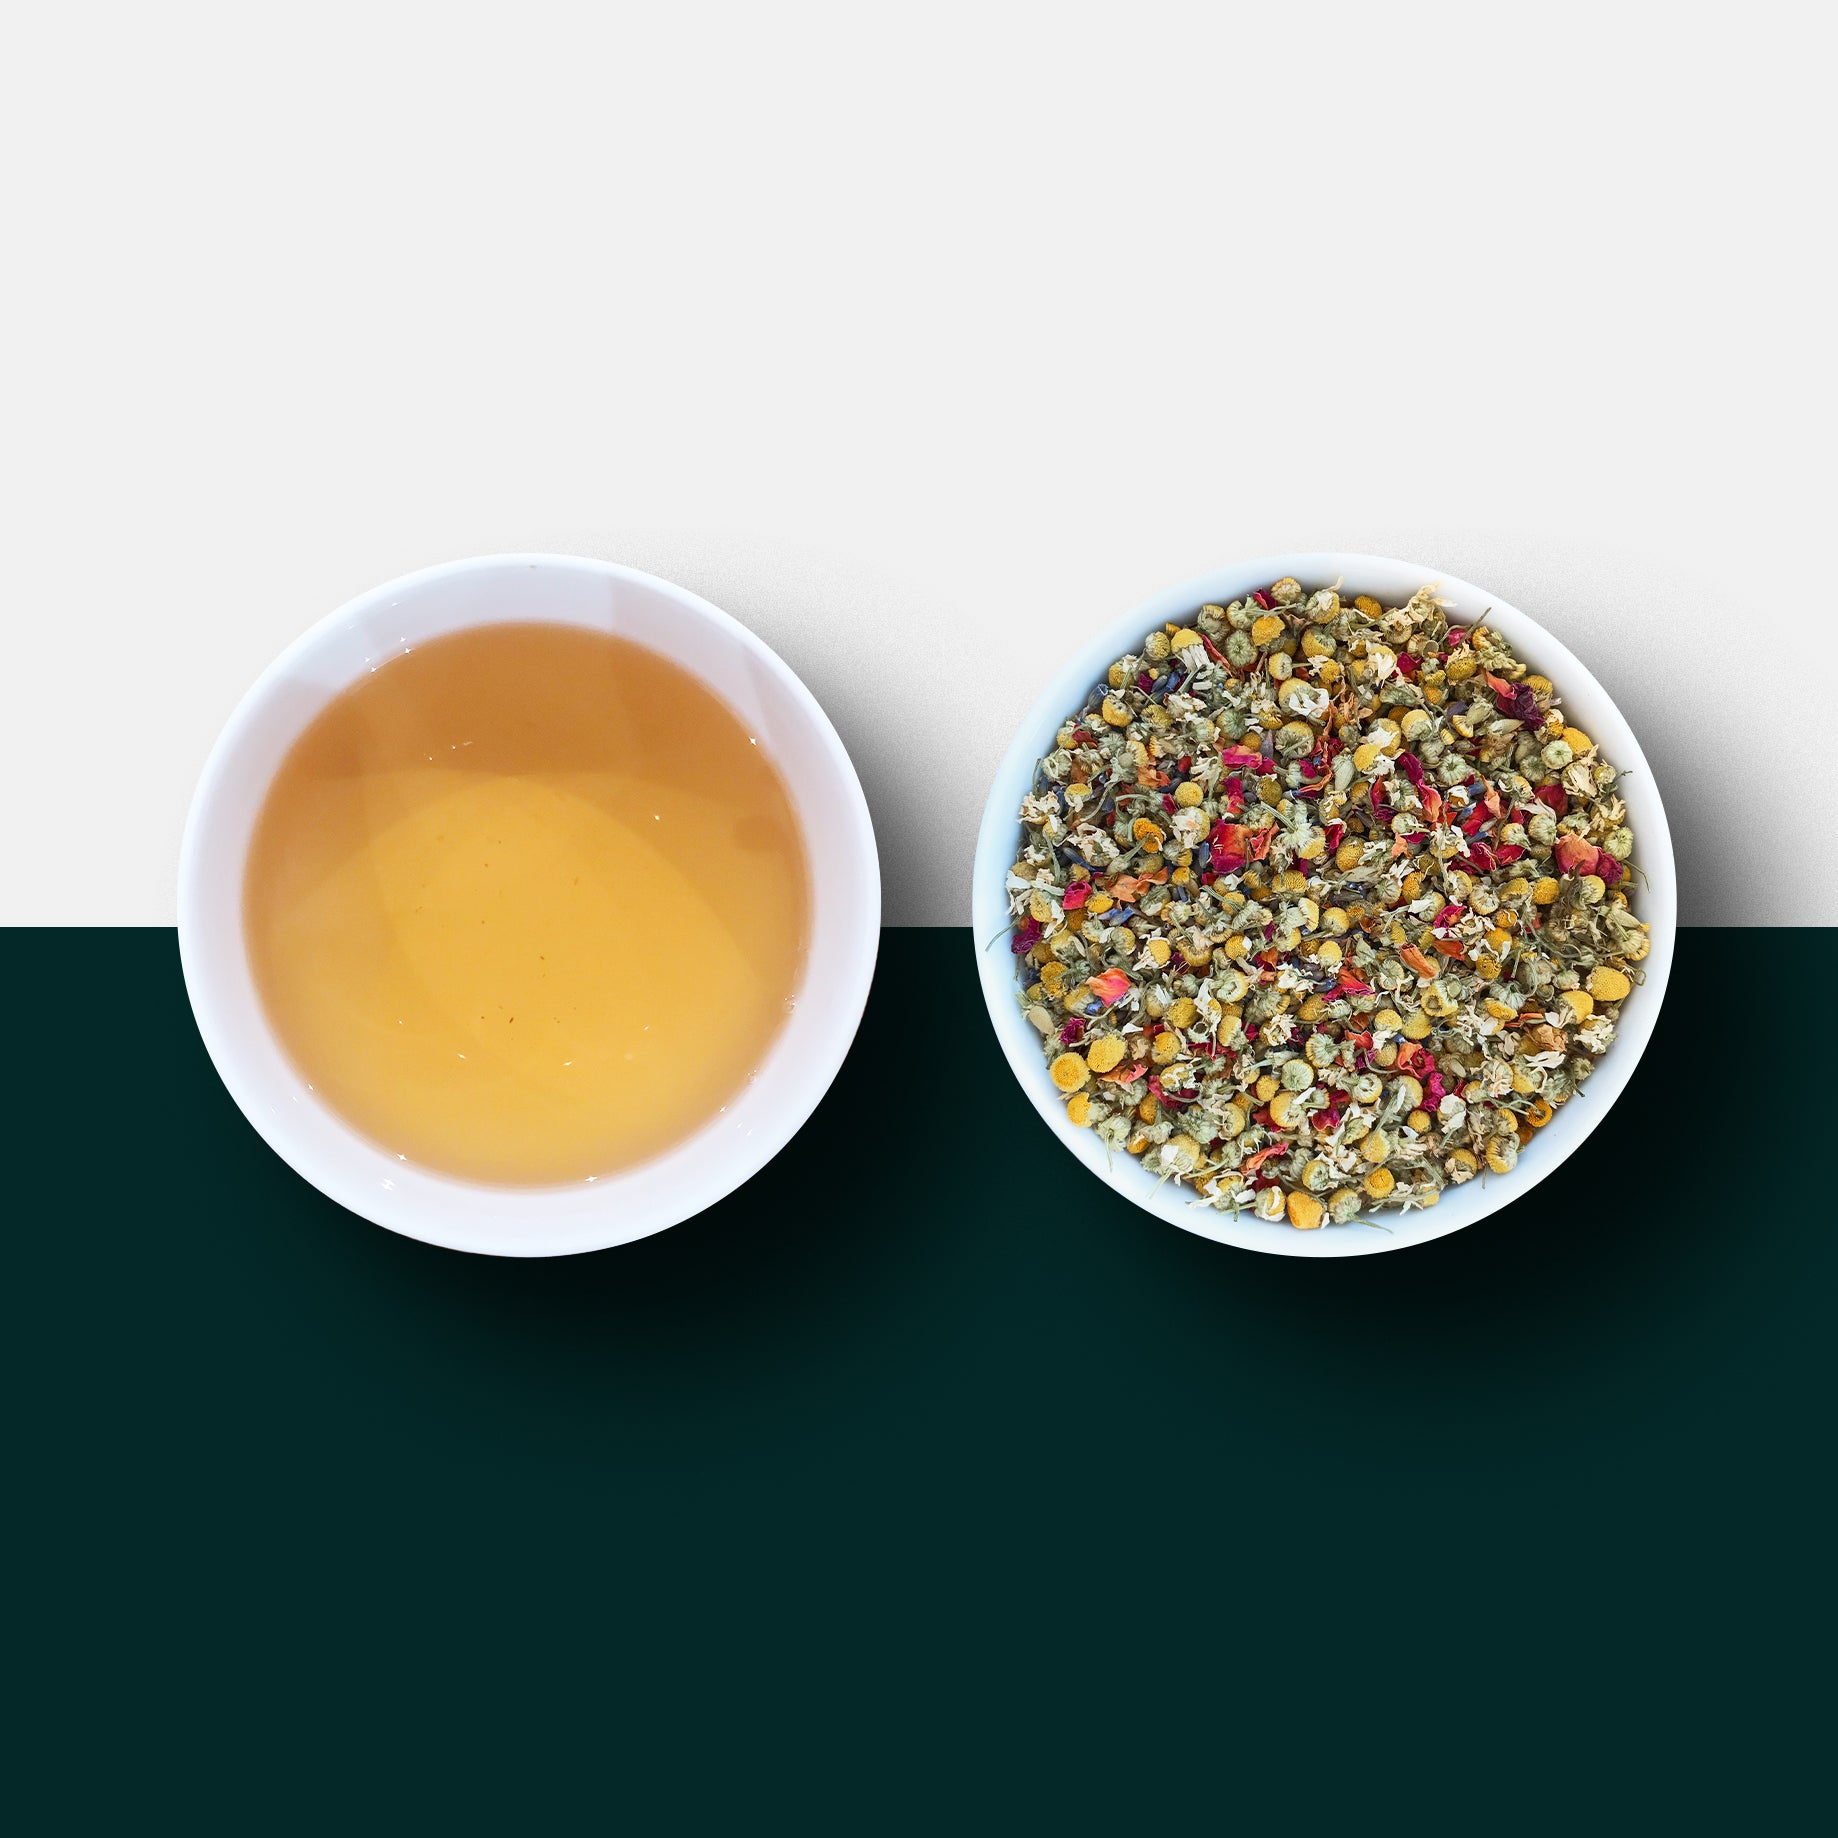 Good Night Tea - Loose Leaf Tea and Liquor - Camomile Tea/ Chamomile Tea, Rose Petals and Lavender